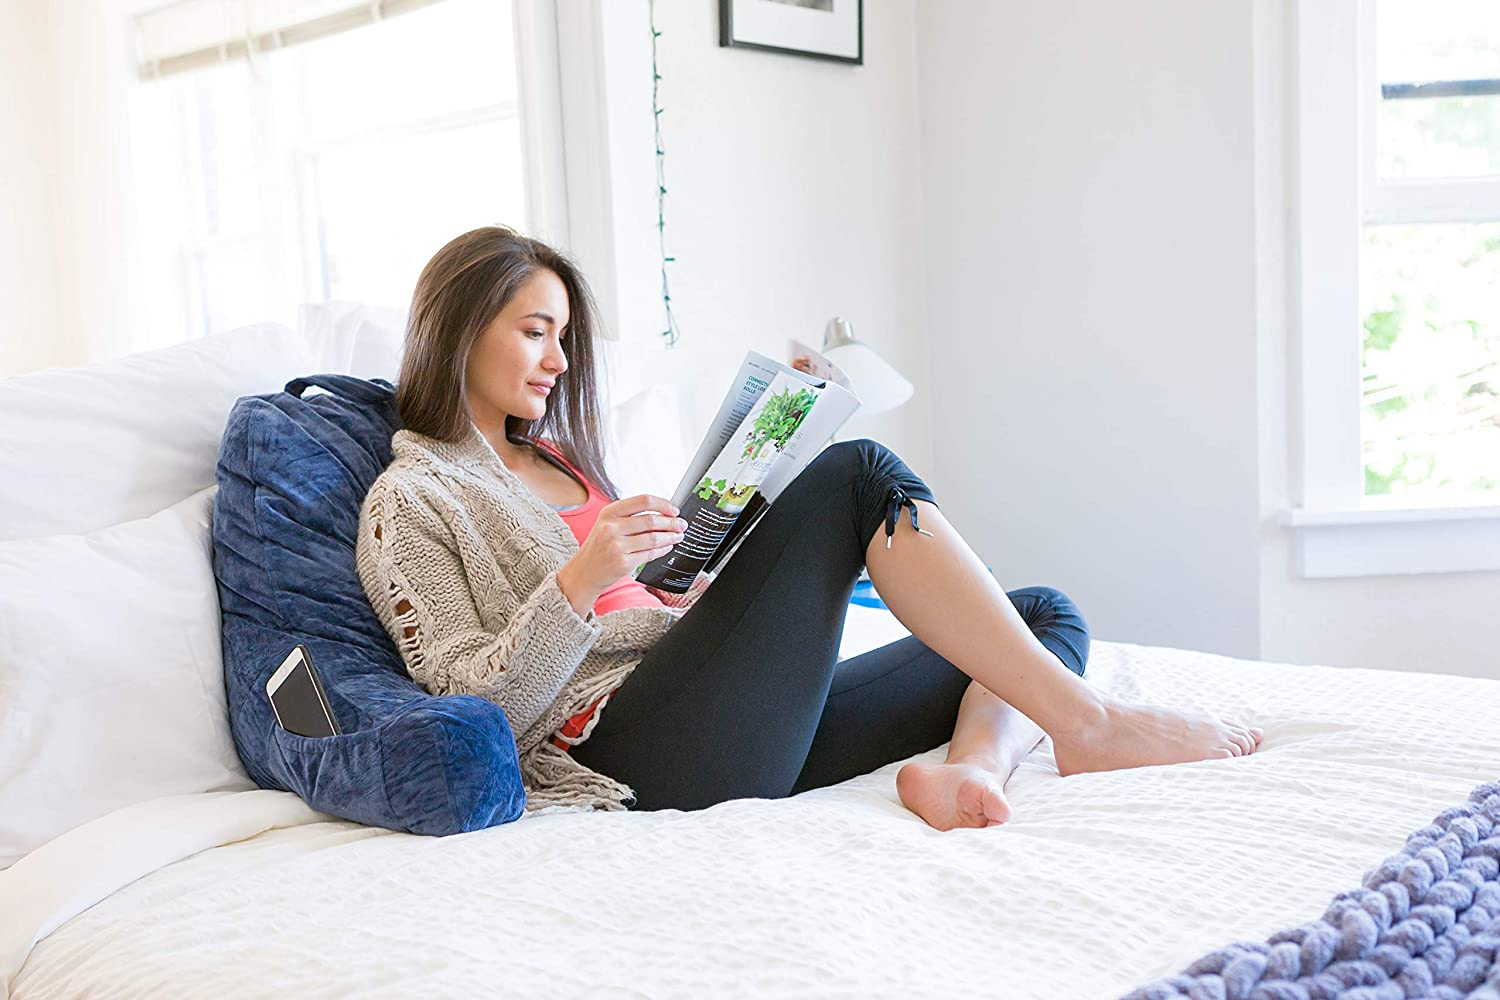 FavFactory Reading Pillow Arms /& Pockets Sitting Up in Bed Navy Blue, Large Bedrest Chair Pillow Removable Cover /& Shredded Memory Foam Back Support When Lounging